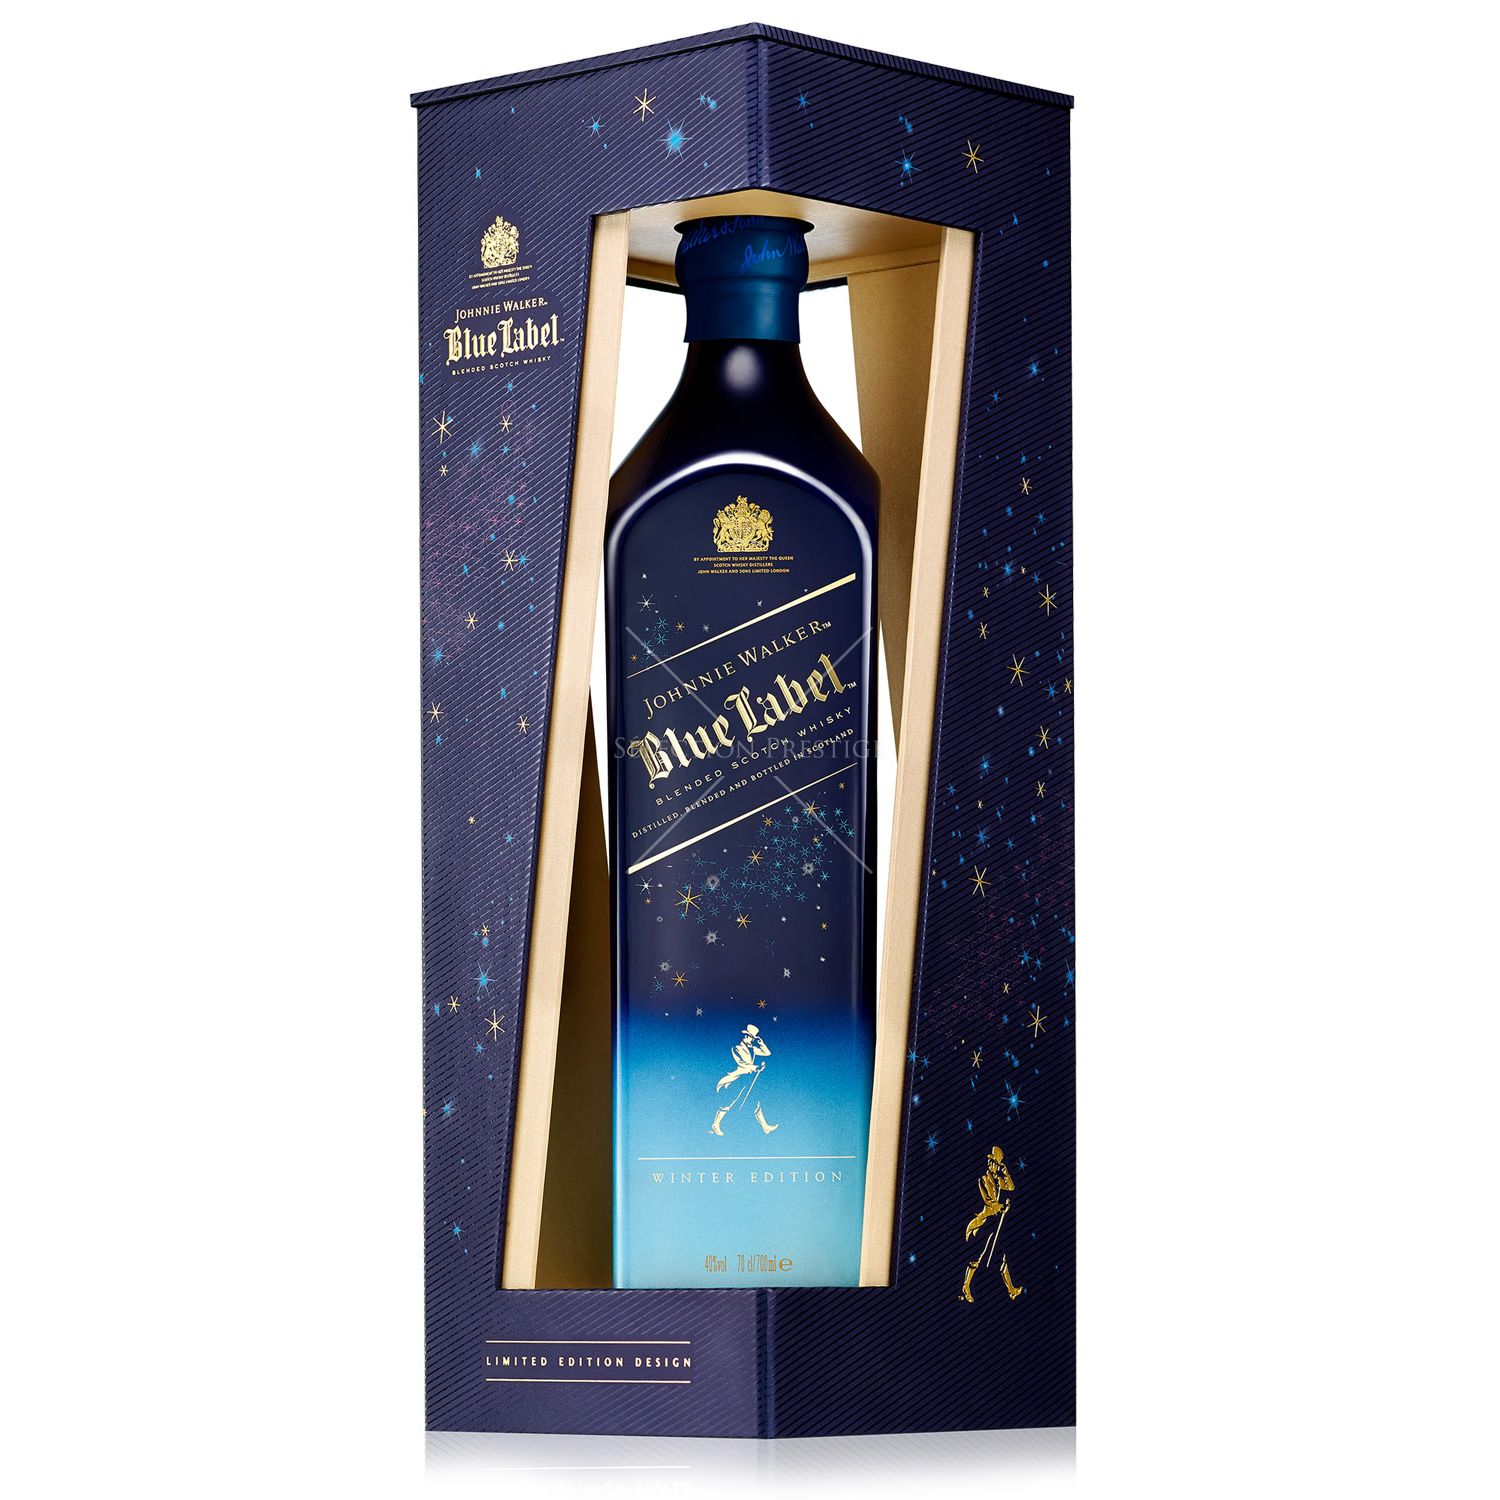 It's just a picture of Universal Johnnie Walker Blue Label Madrid Edition